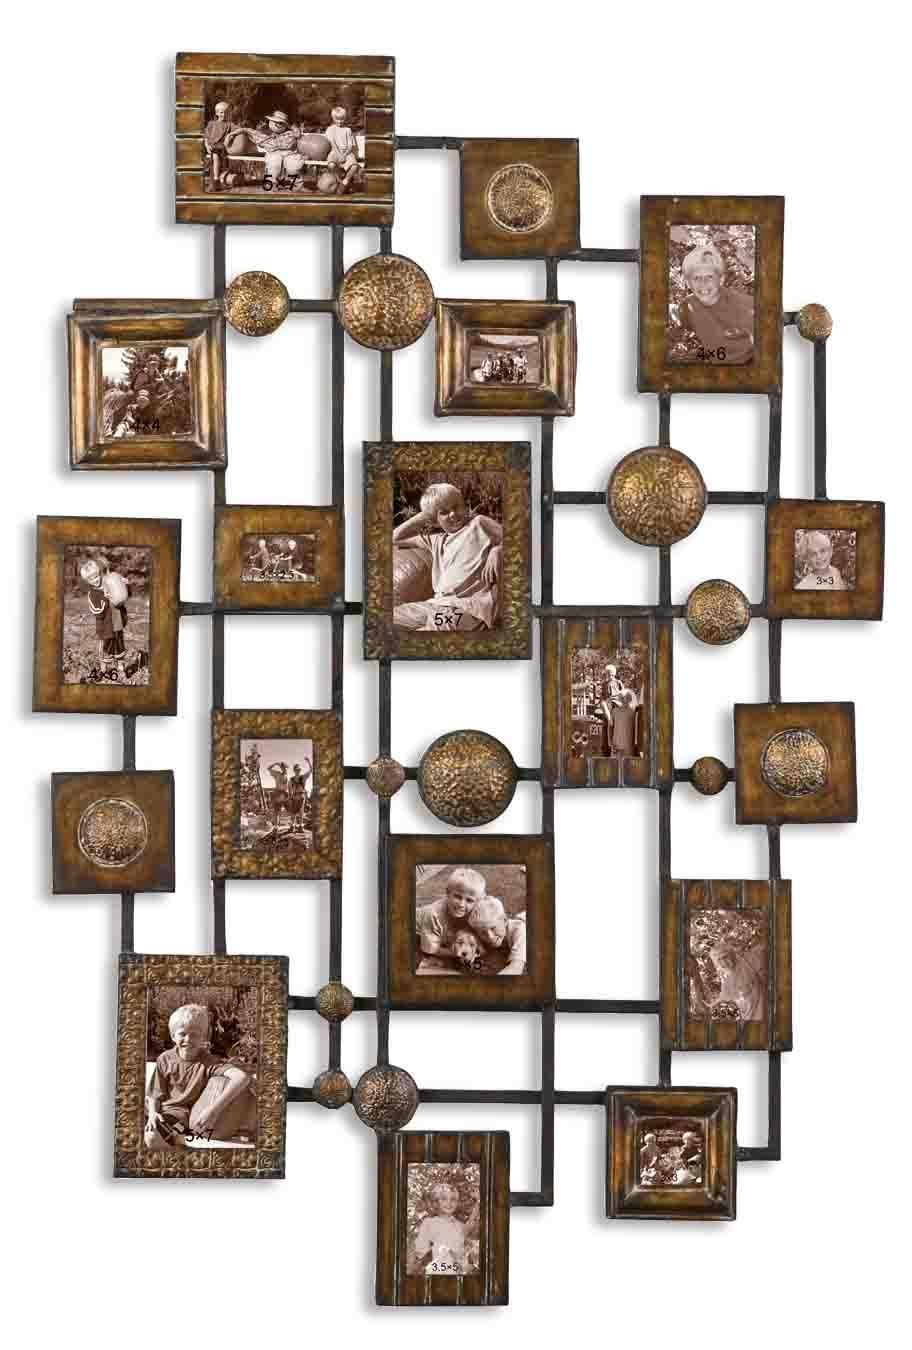 Uttermost Natane Decorative Metal Wall Art 13465 within Uttermost Metal Wall Art